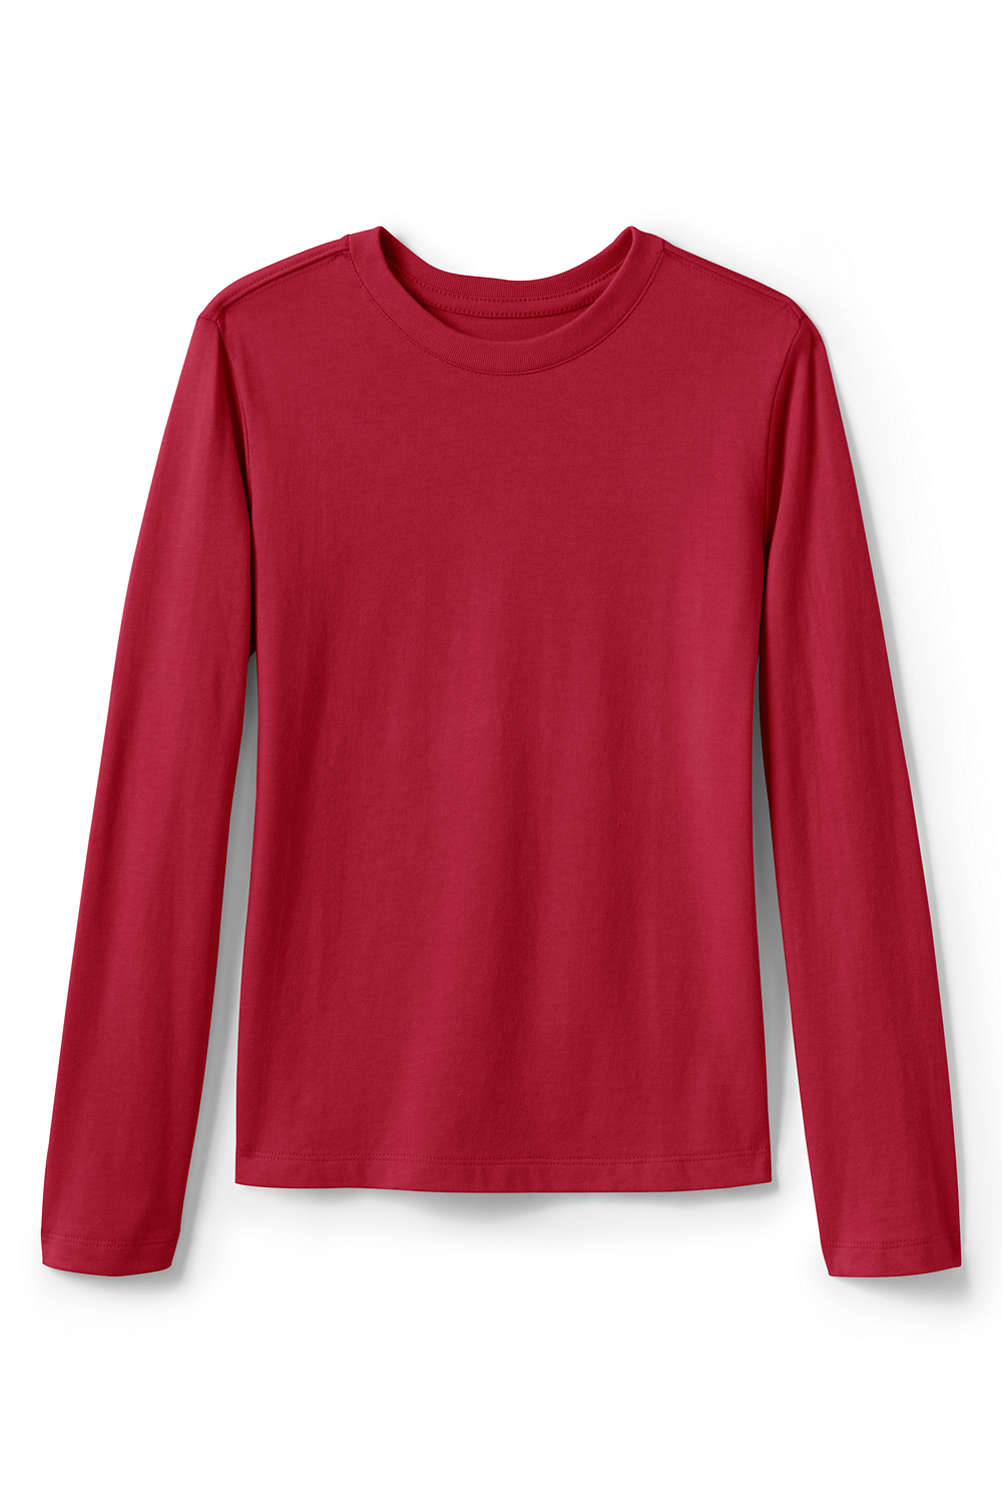 4bf9a9e93fb44 Girls Long Sleeve Fem Fit Essential Tee from Lands  End